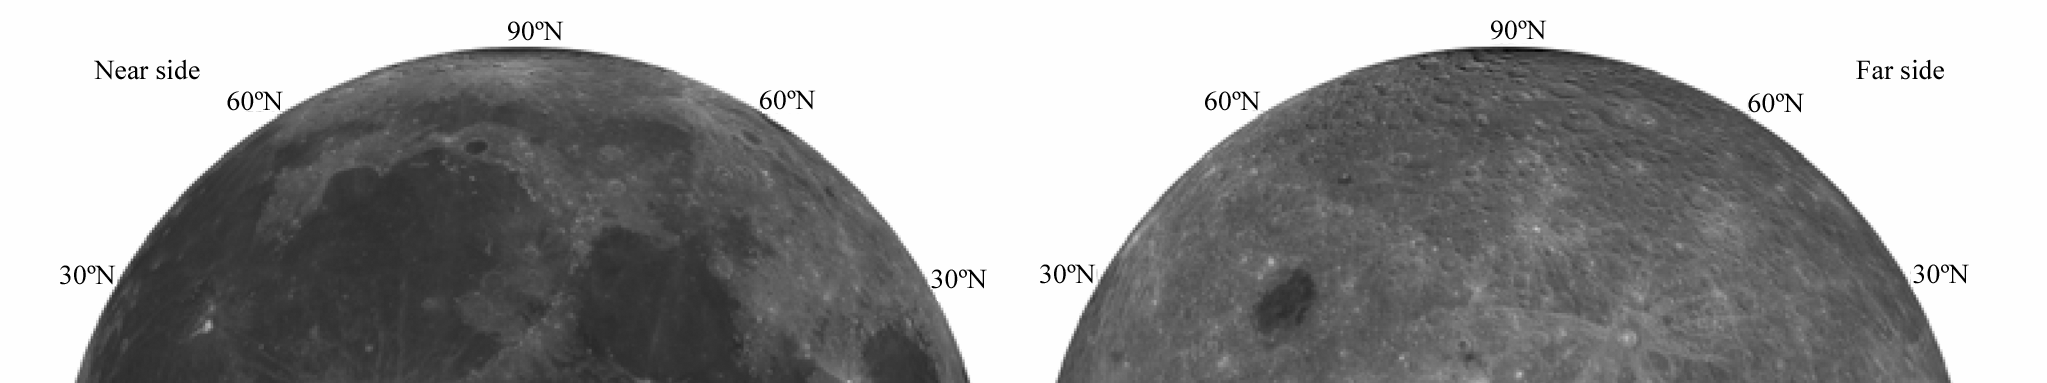 30 Chin.J.Geochem.(2014)33:024 044 Fig. 5. Distribution map of pyroxene in the lunar Mare Crisium region. Fig. 6. Distribution map of FeO in the lunar Mare Crisium region.